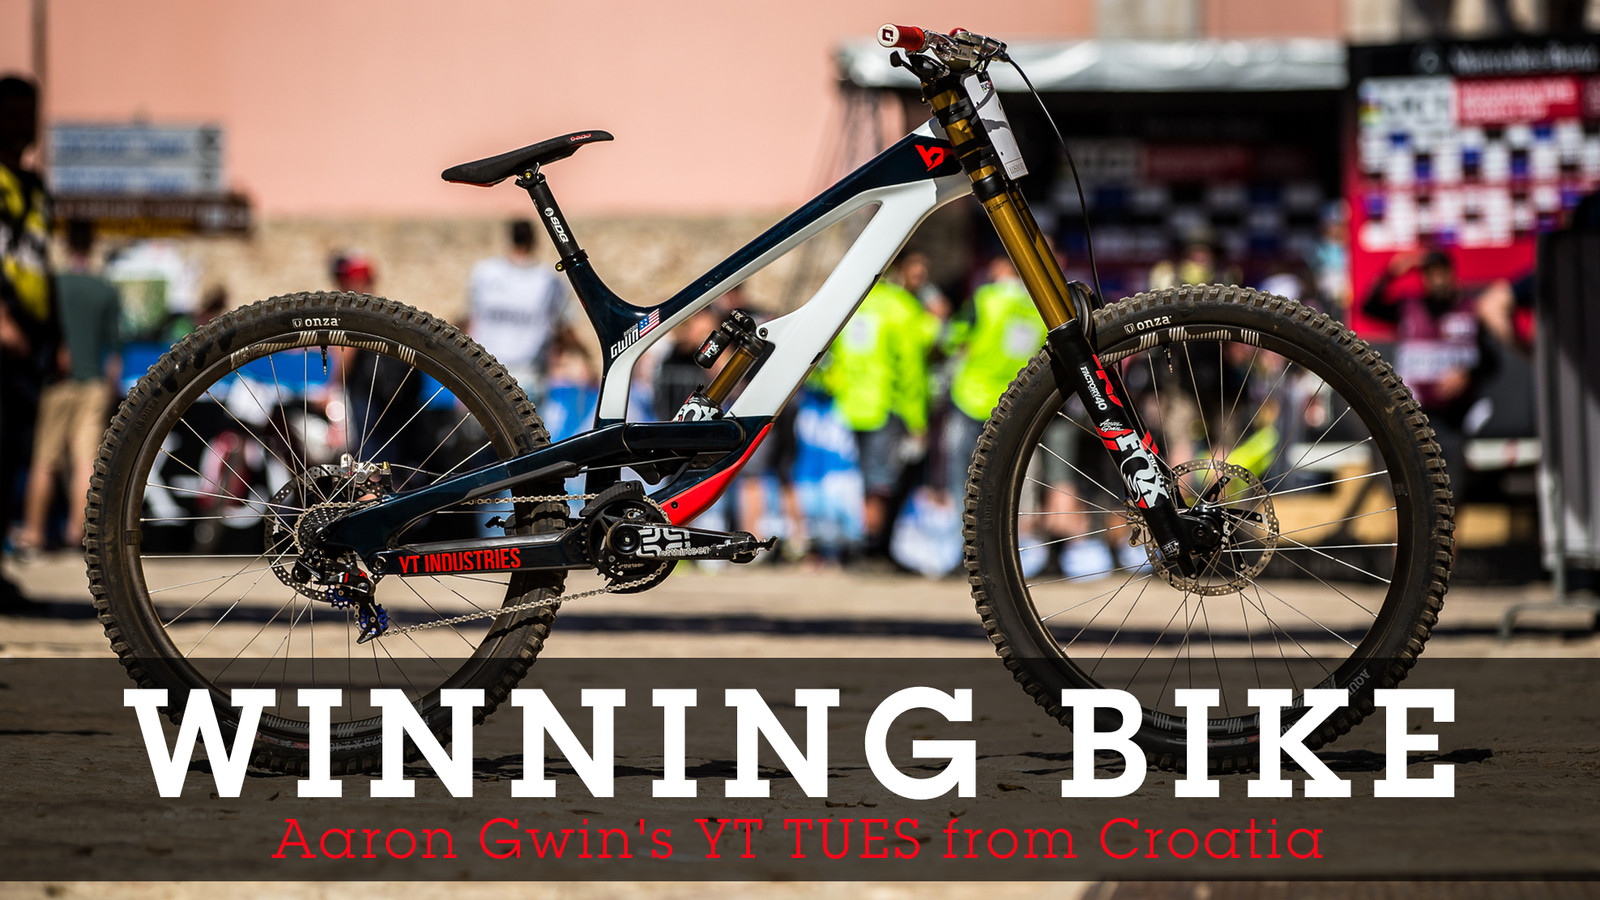 WINNING BIKE: Aaron Gwin's YT TUES from Croatia